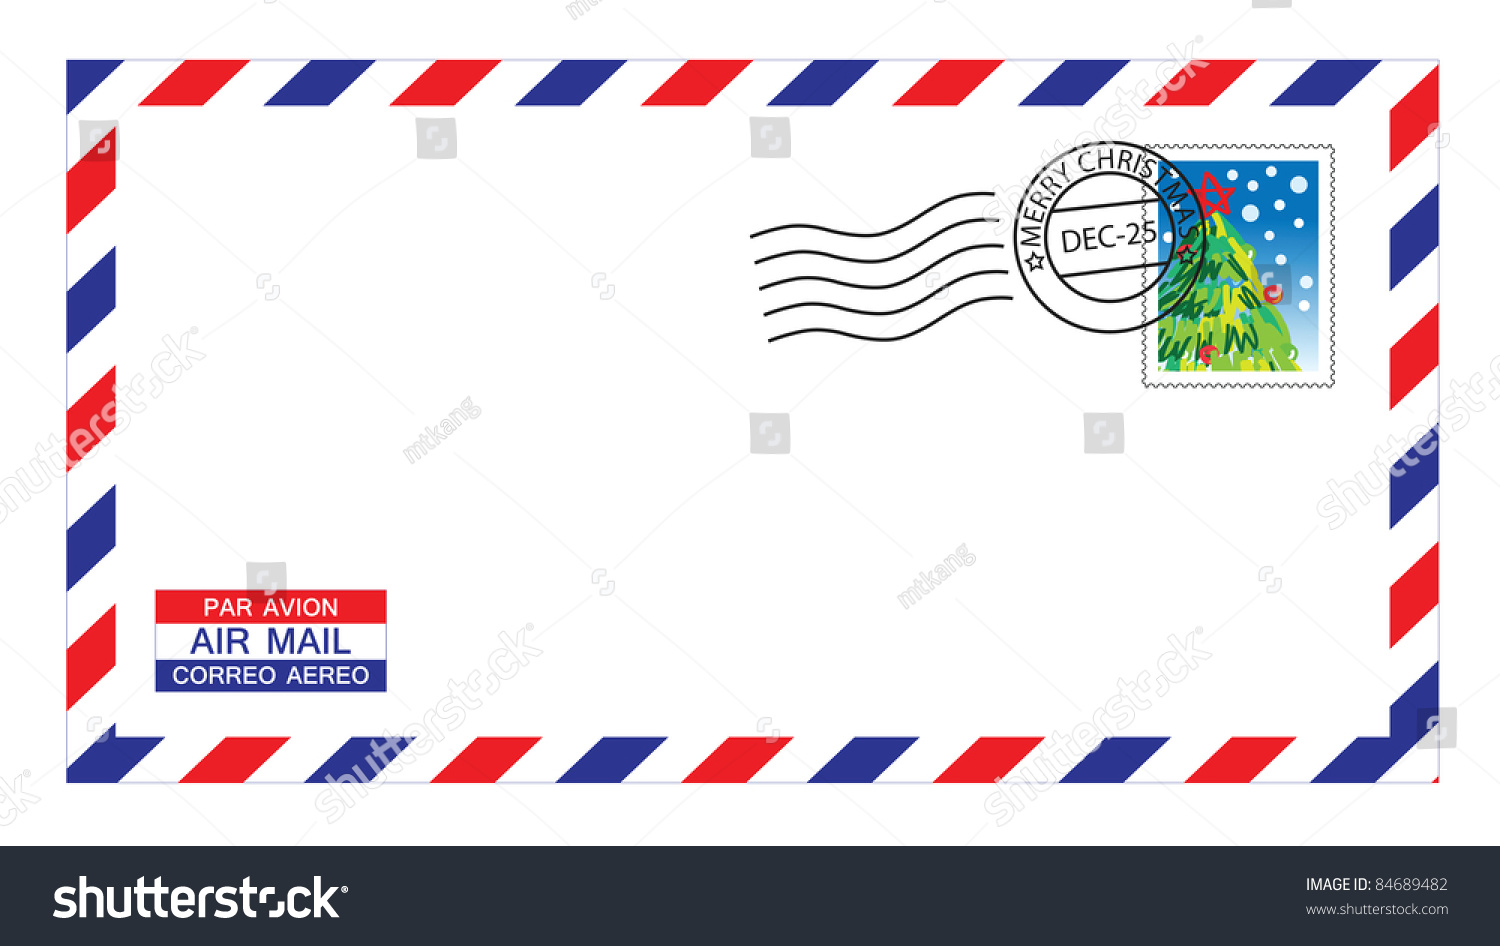 can i write airmail on envelope